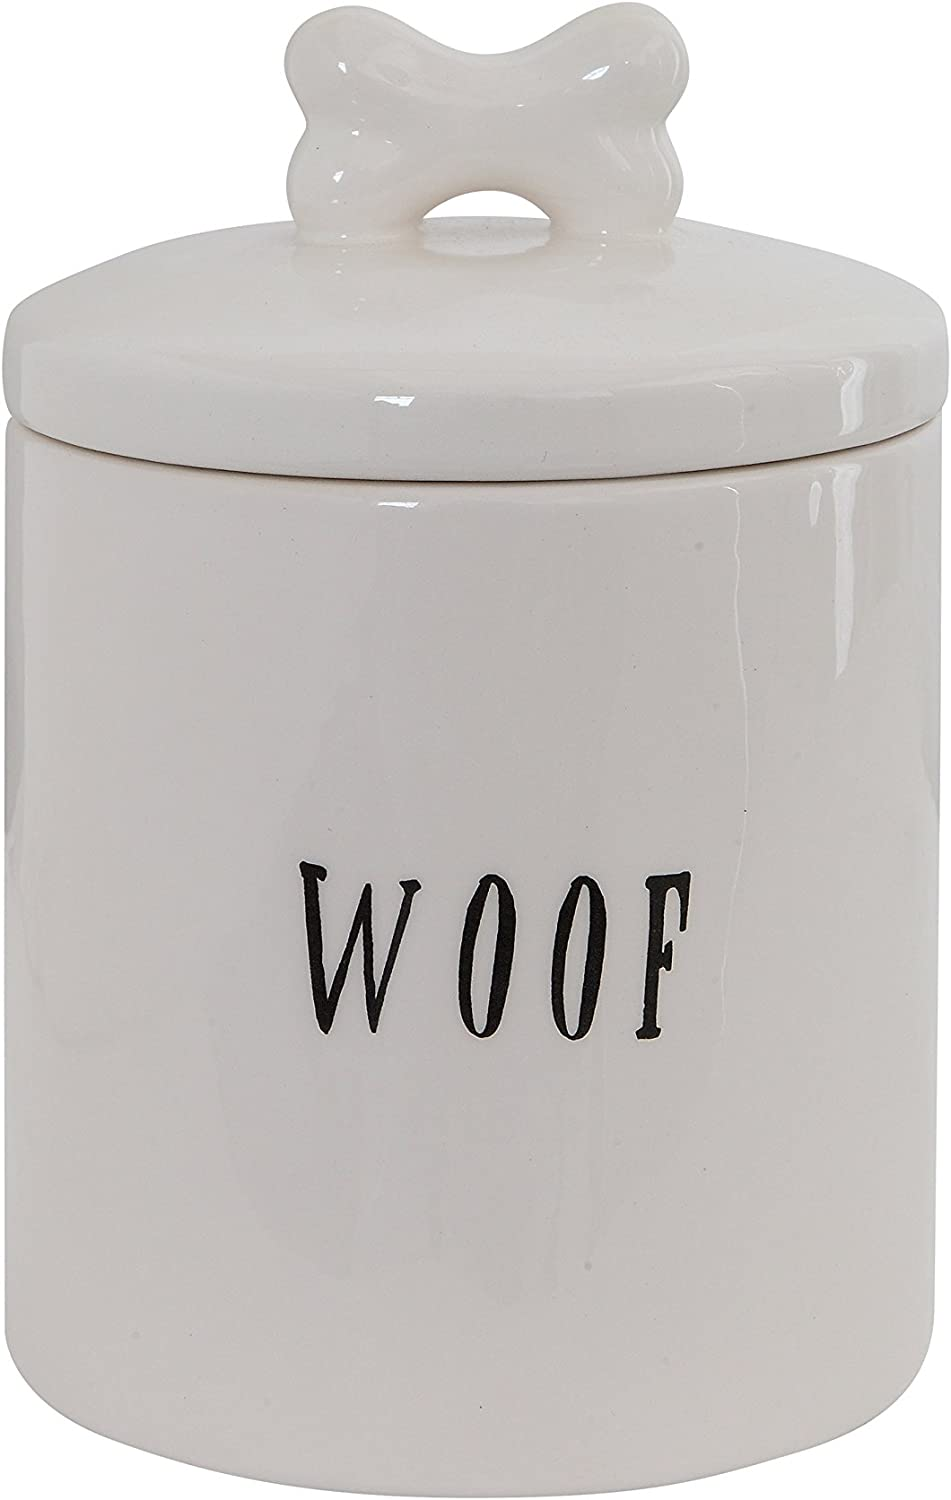 Amazon Com Creative Co Op Woof Ceramic Dog Treat Jar With Bone Handle In Lid 6 Round X 8 5 Tall White Kitchen Dining